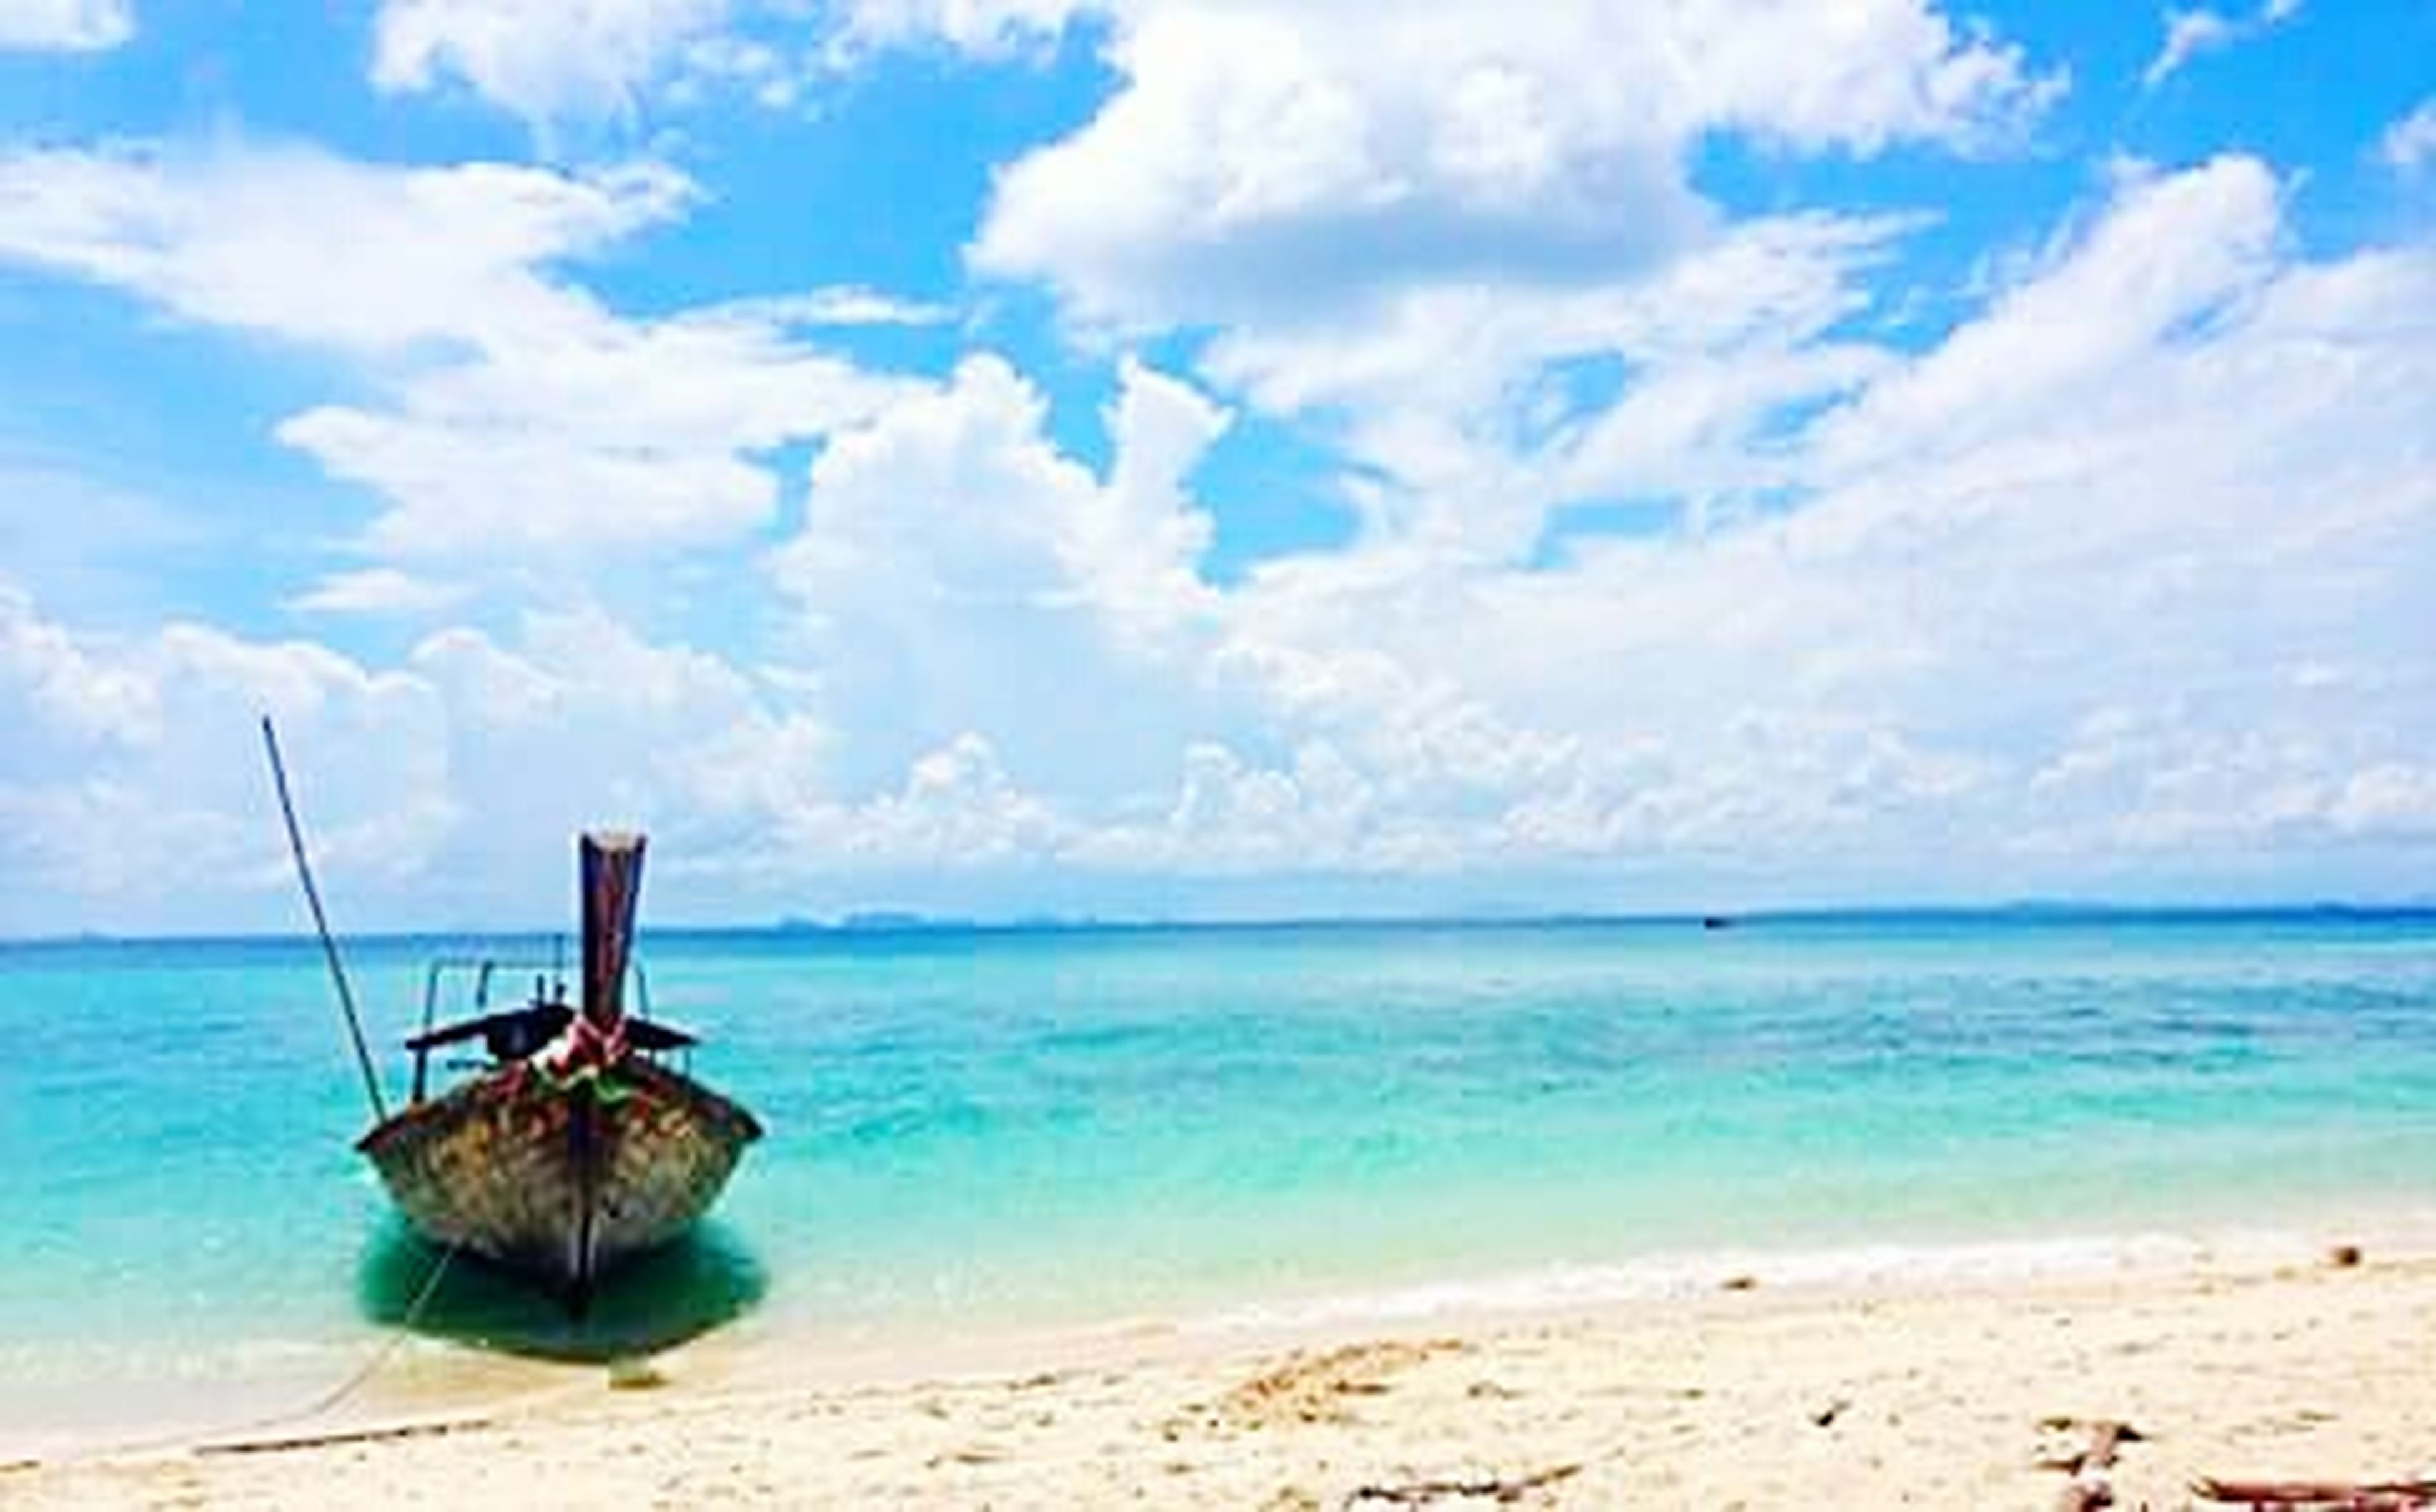 sea, horizon over water, water, beach, sky, shore, tranquility, tranquil scene, scenics, sand, beauty in nature, blue, cloud - sky, nature, nautical vessel, cloud, idyllic, boat, day, calm